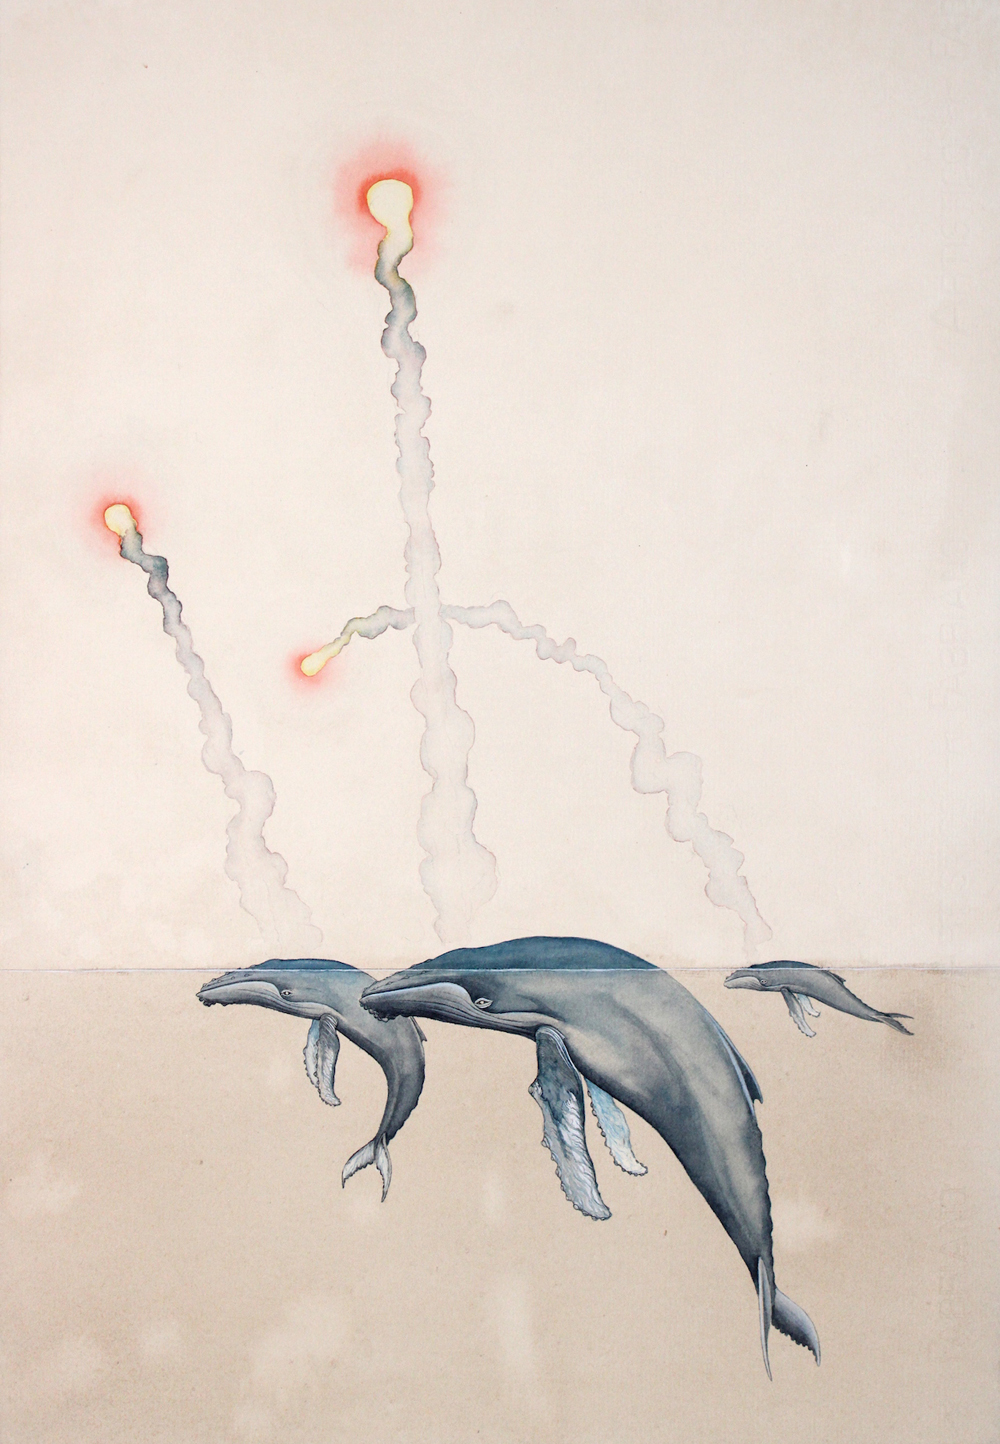 Justin Gibbens, Flare,2020, watercolor, ink on paper, 22 x 15, $1800.